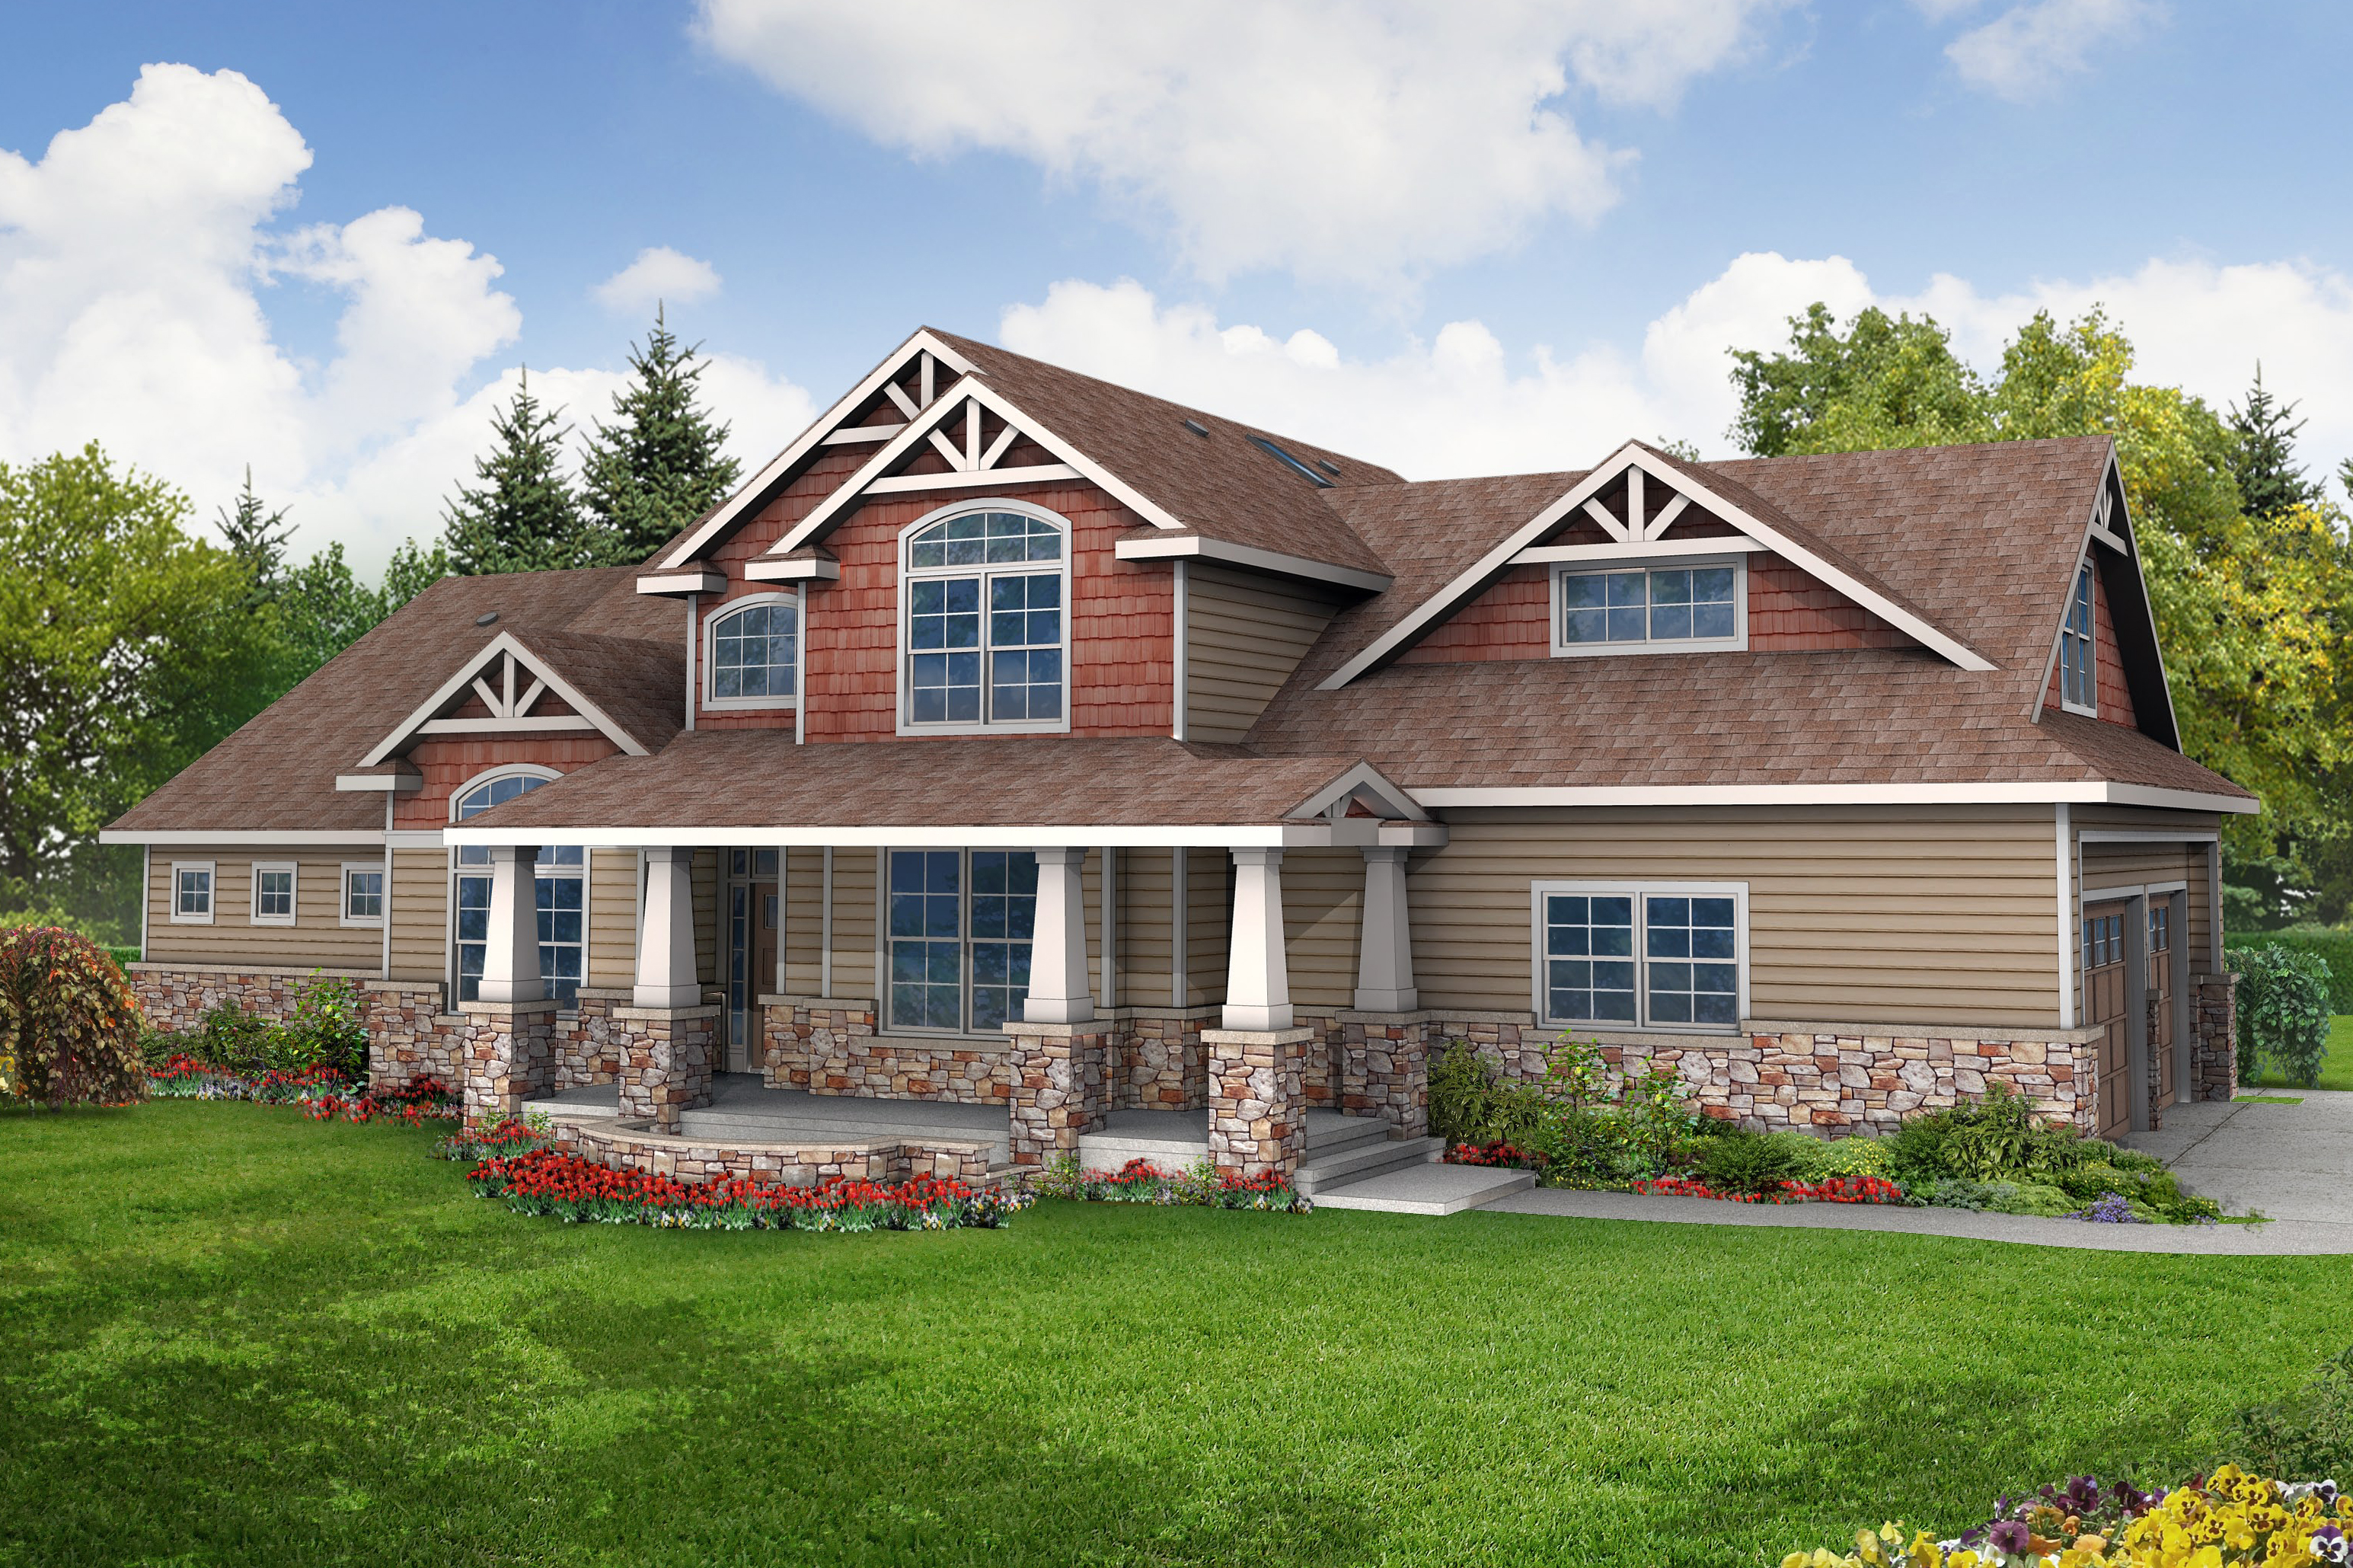 Craftsman house plans craftsman home plans craftsman for Home design images gallery